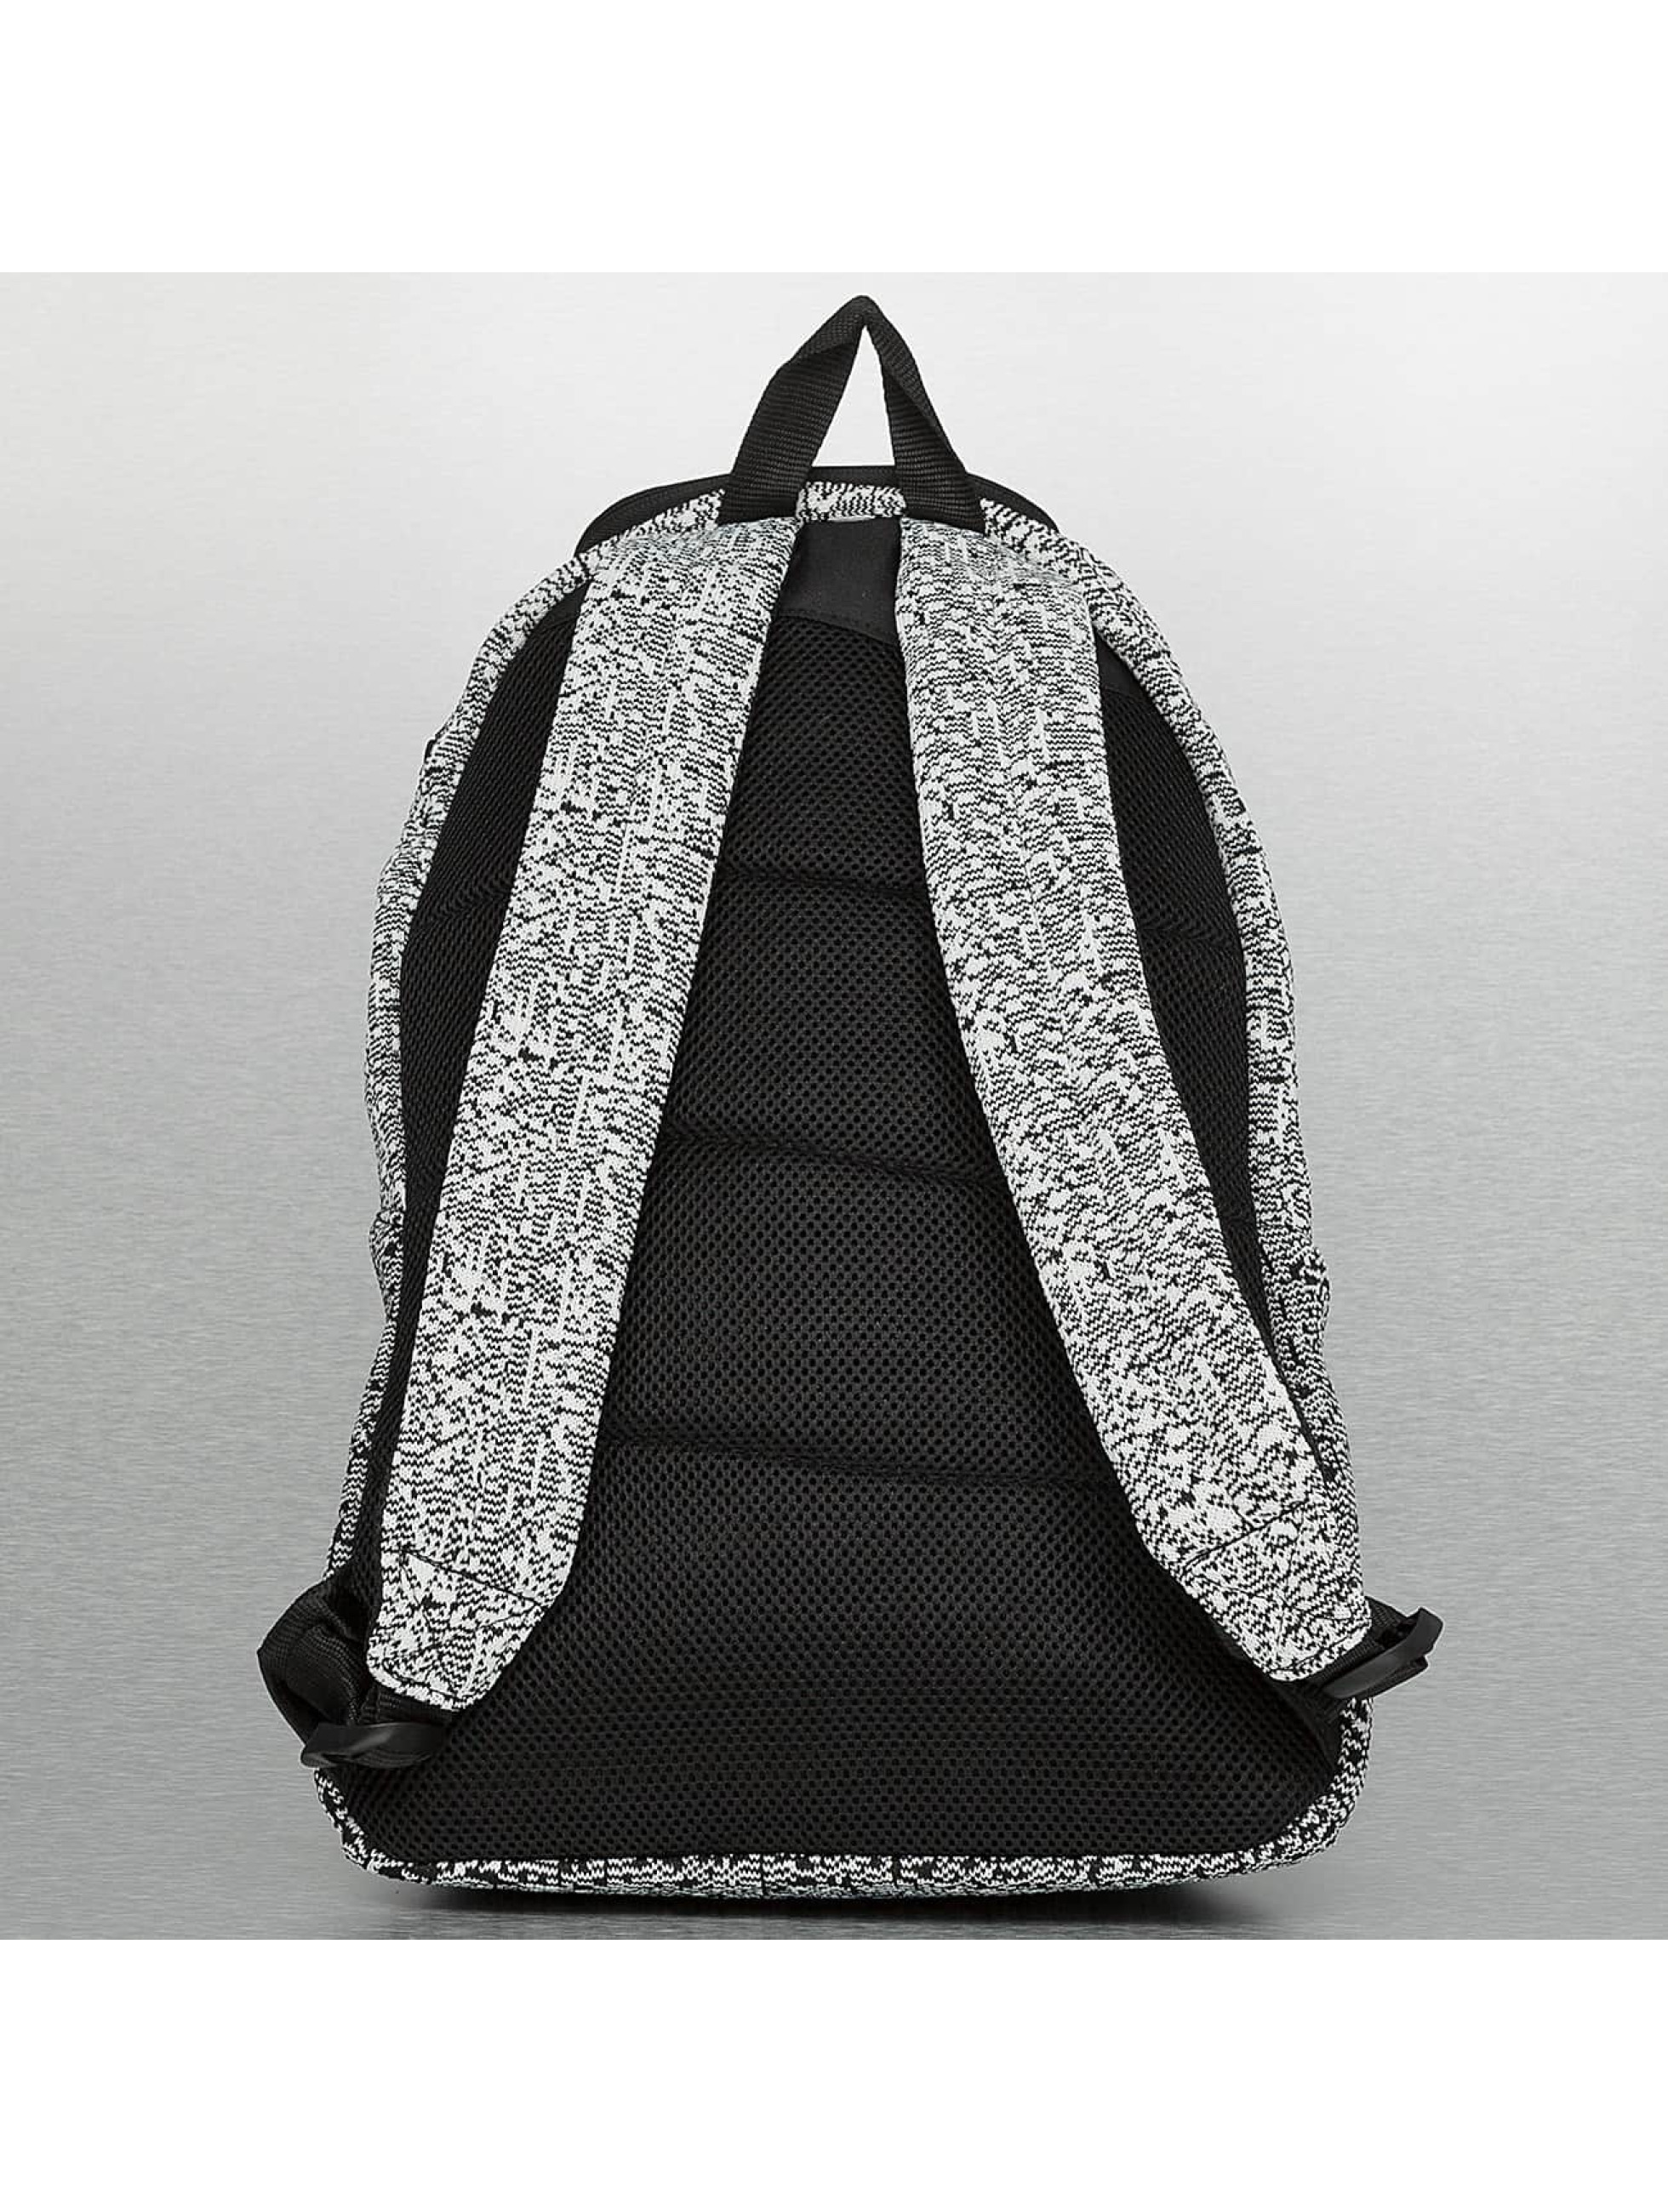 Project Delray Backpack The R1GHT grey